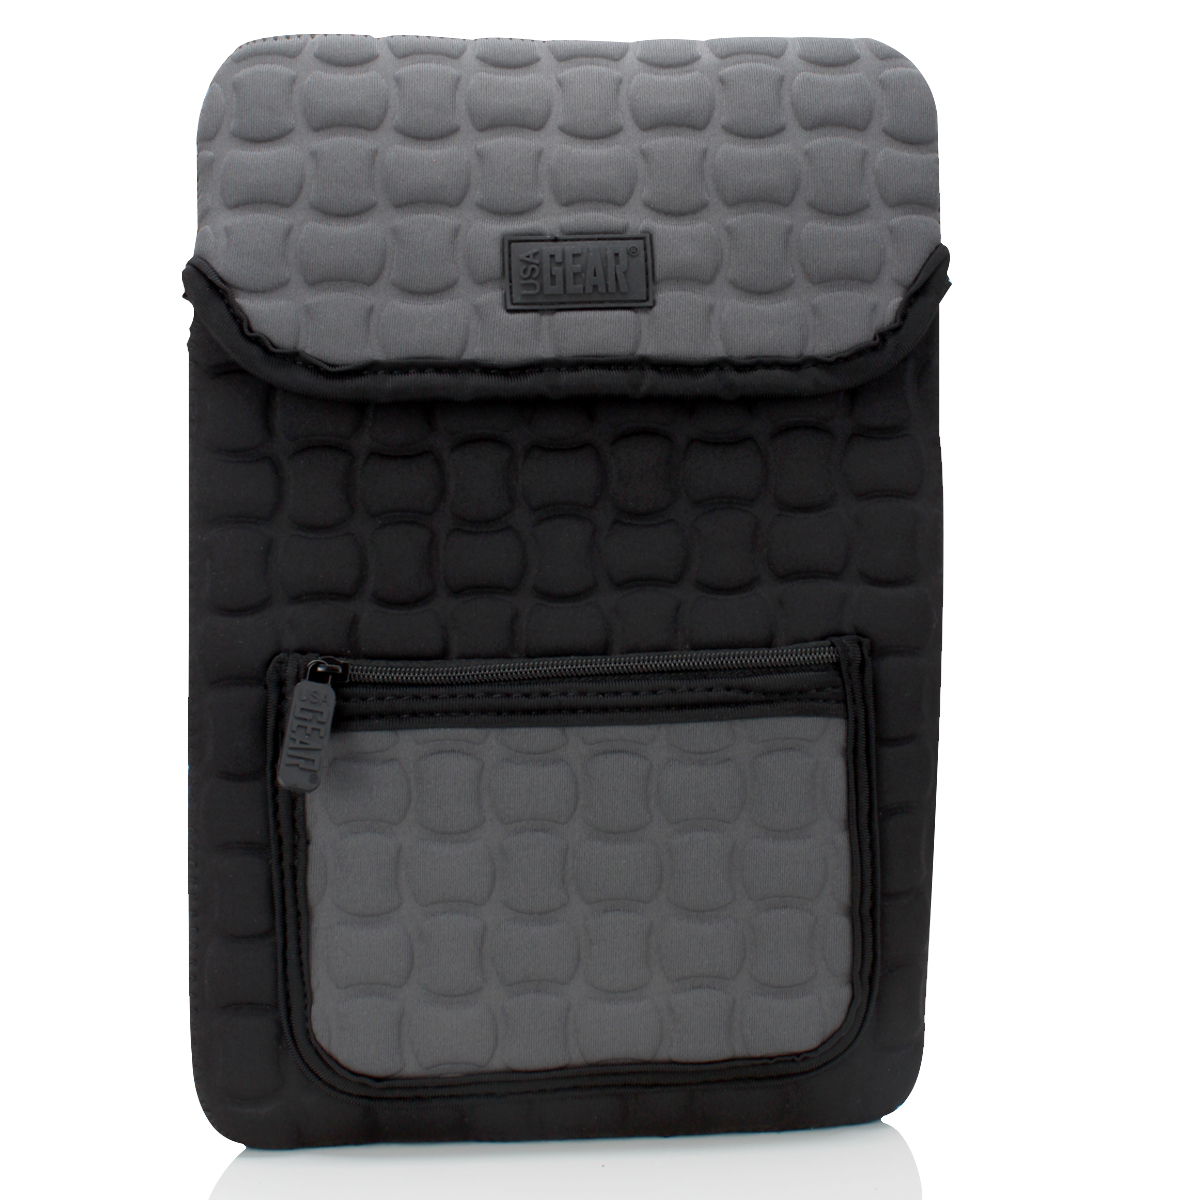 """USA GEAR Tablet Sleeve Compatible with 11-inch iPad Pro 2018 [Latest Model], 9.7-inch iPad 2018, 10.5-inch iPad Pro, more 10"""" to 11"""" tablets - X TAB Protective Neoprene Travel Bag Cover (Black)"""